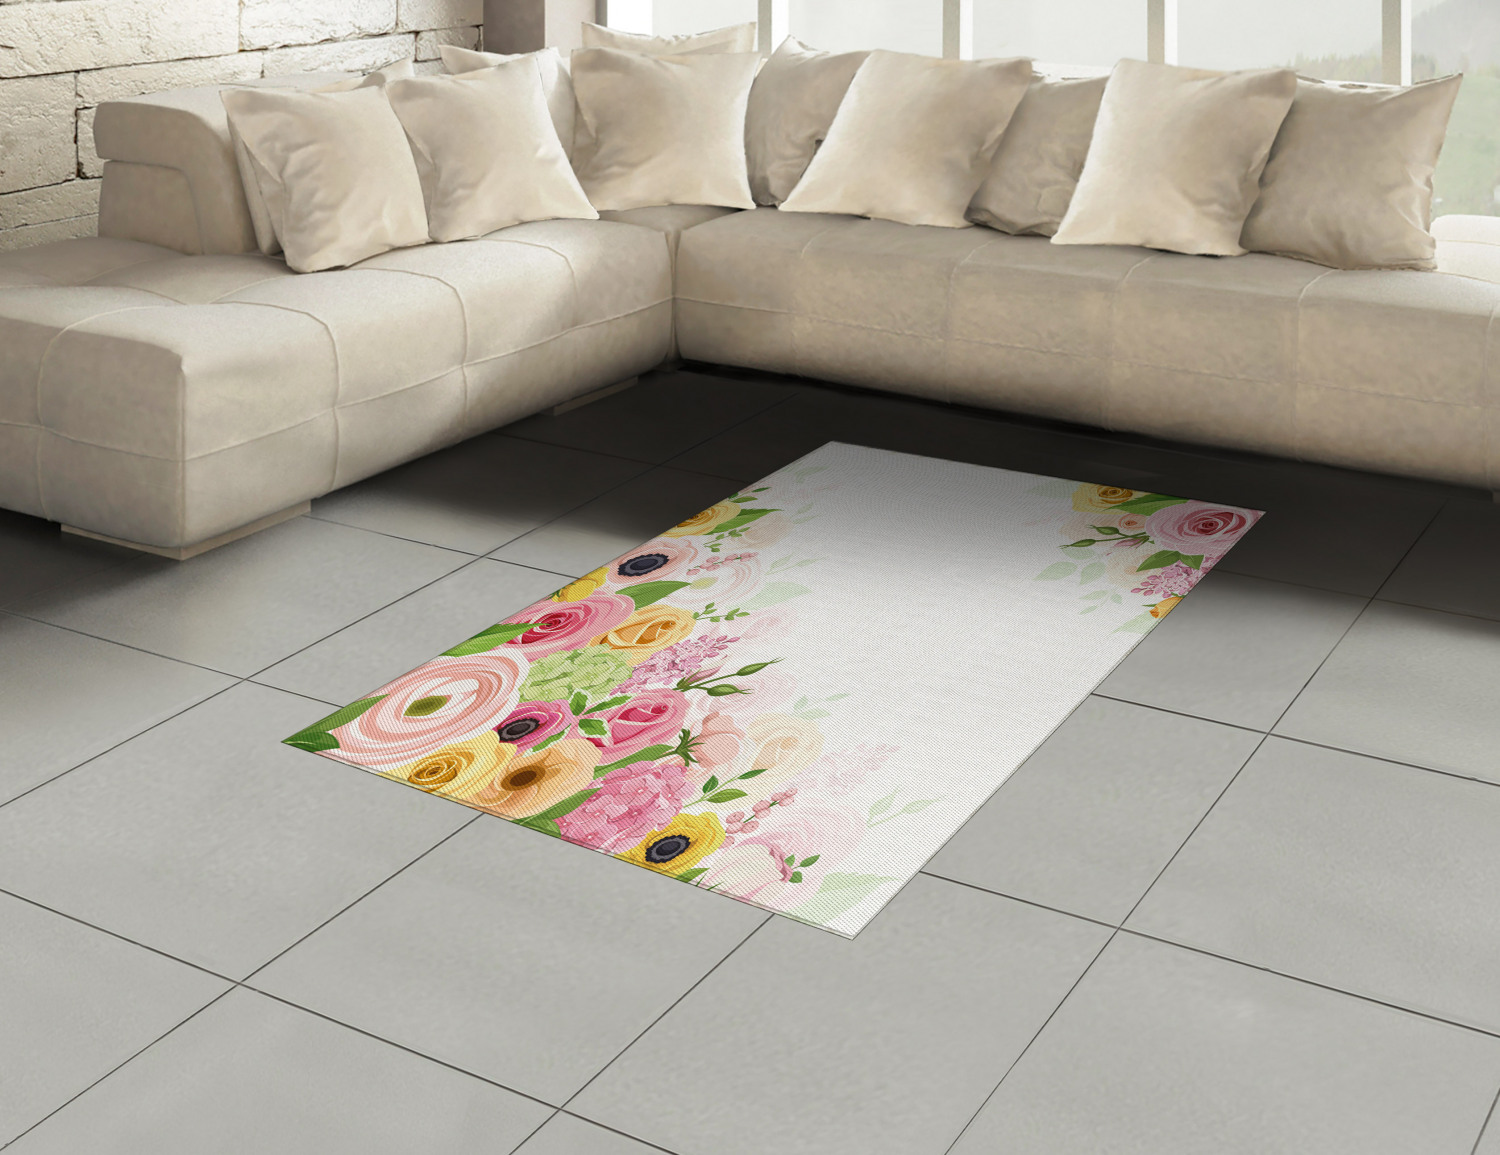 Anemone-Flower-Area-Rug-Decor-Flat-Woven-Accent-Rug-Home-Decor-2-Sizes-Ambesonne thumbnail 24